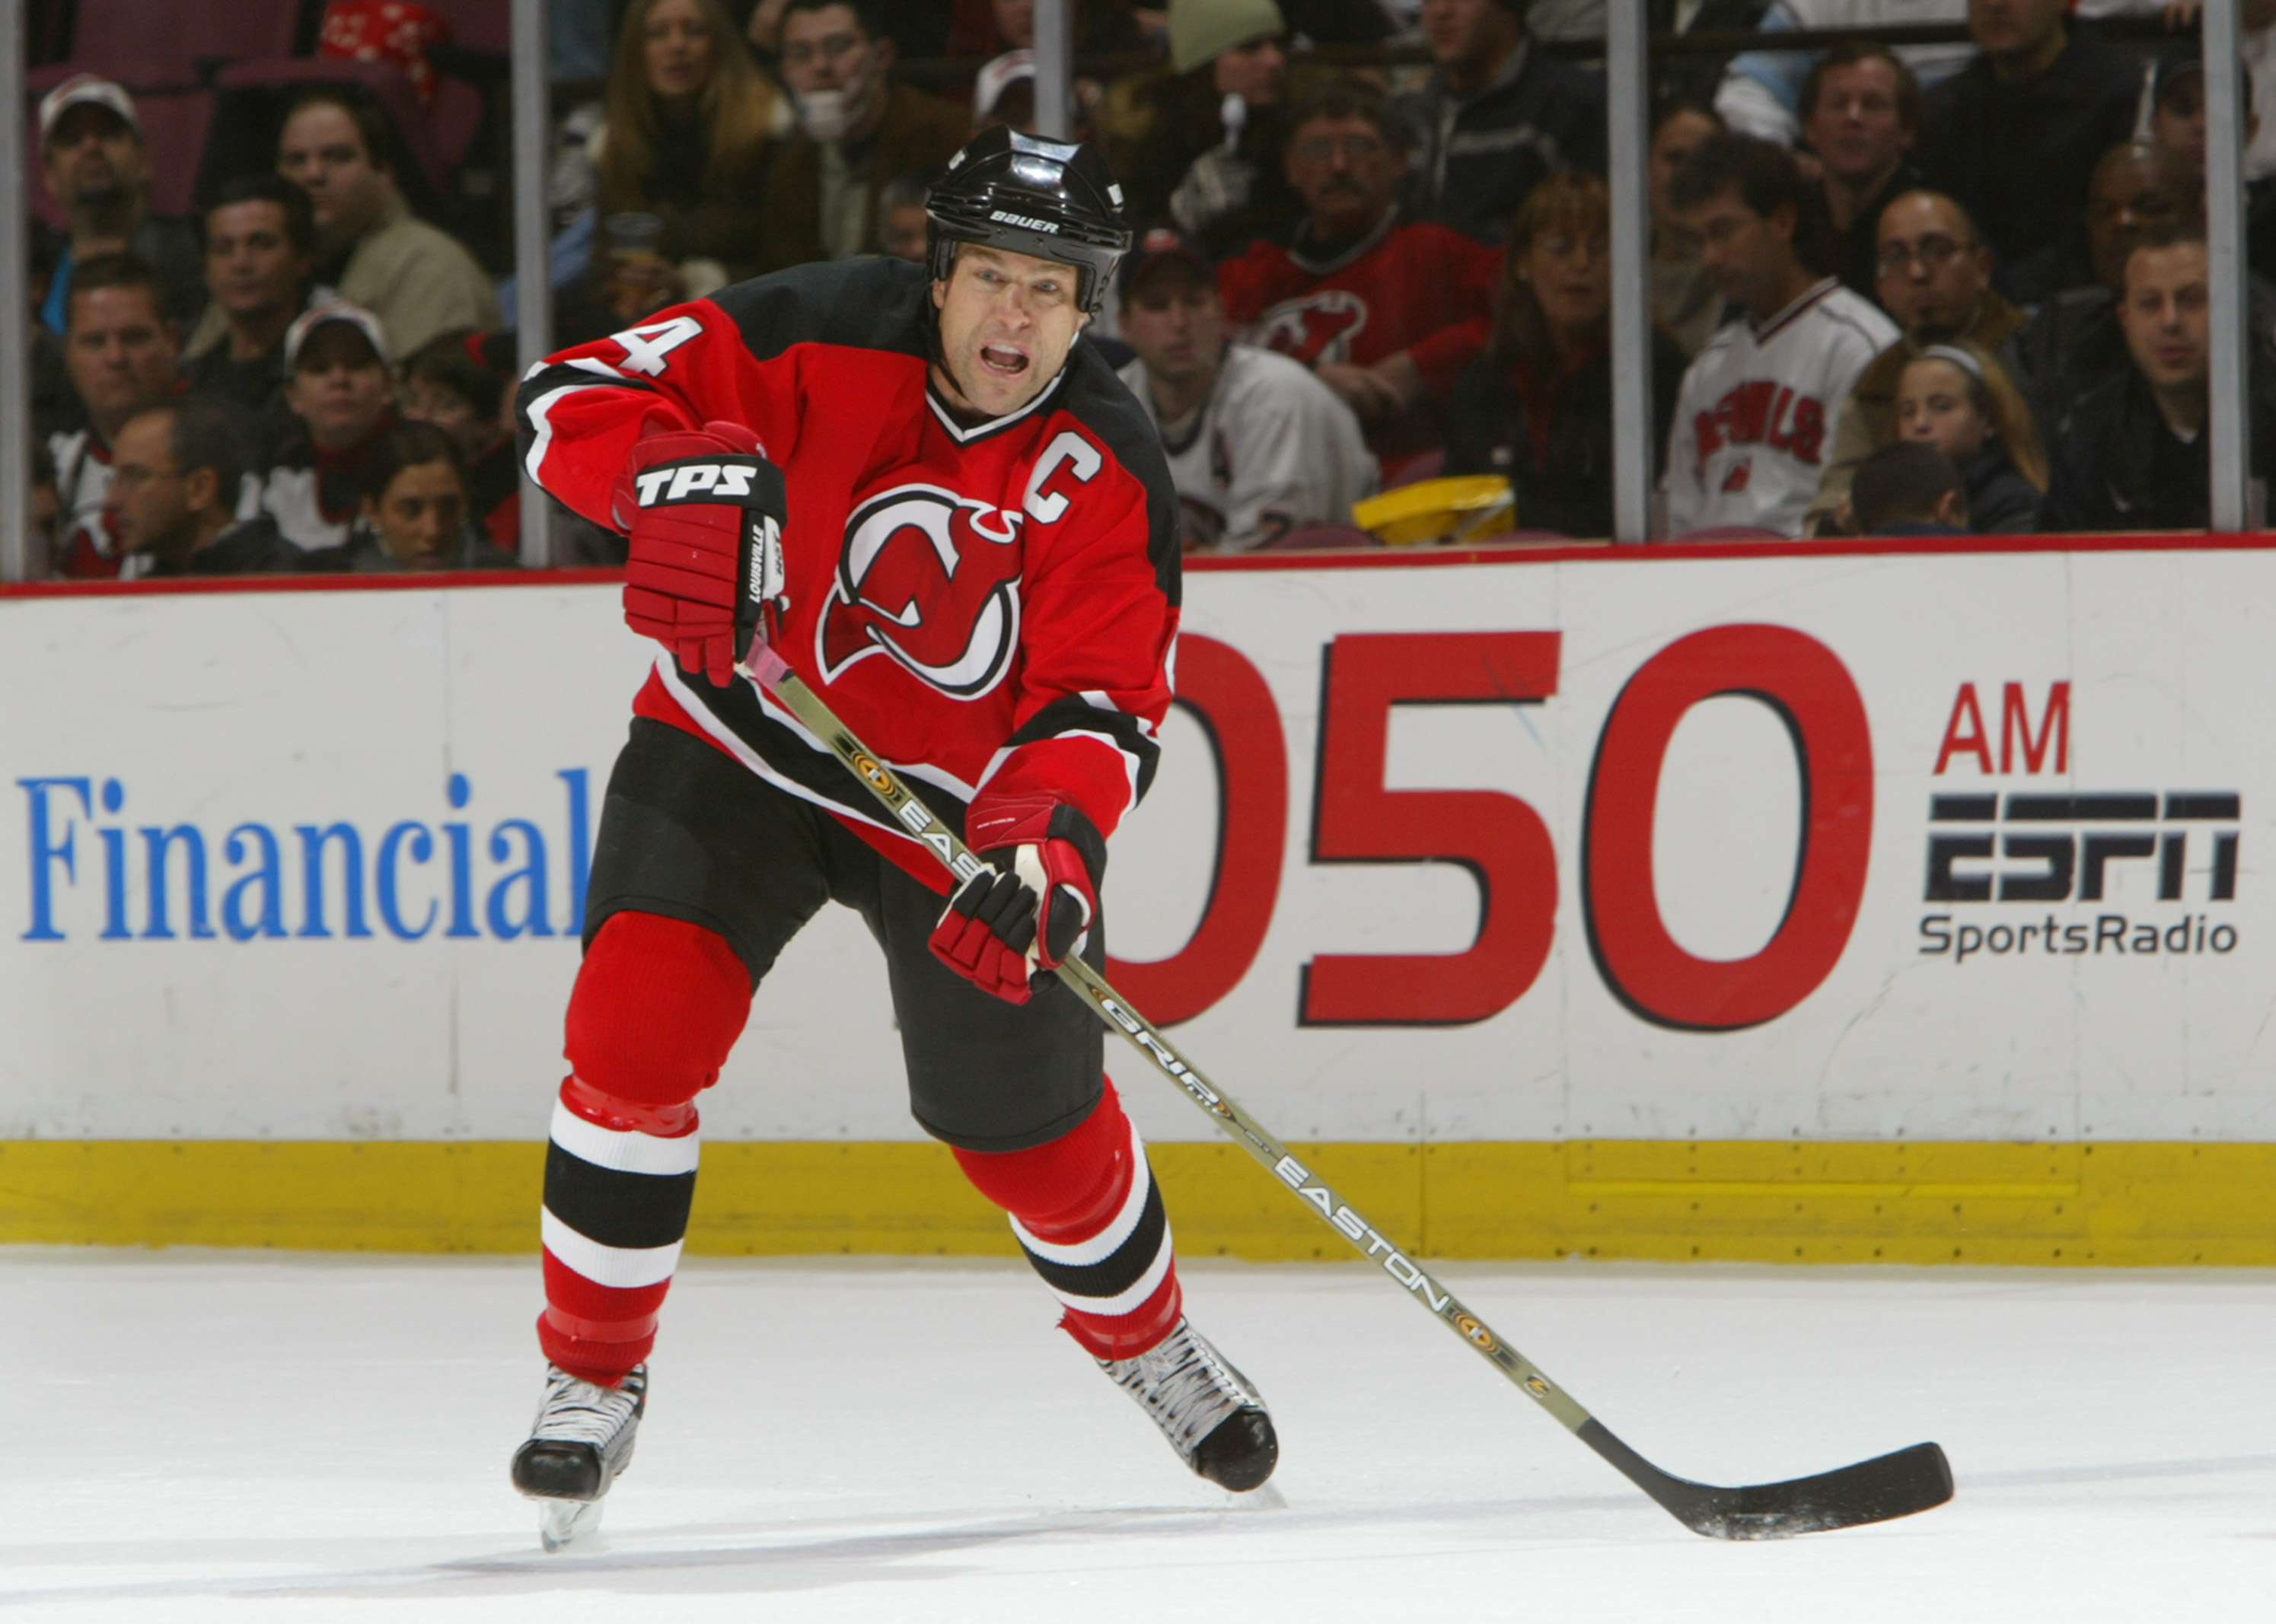 EAST RUTHERFORD, NJ - DECEMBER 10:  Defenseman Scott Stevens #4 of the New Jersey Devils shoots during the game against the New York Islanders on December 10, 2003 at Continental Airlines Arena in East Rutherford, New Jersey. The Devils won 1-0. (Photo by